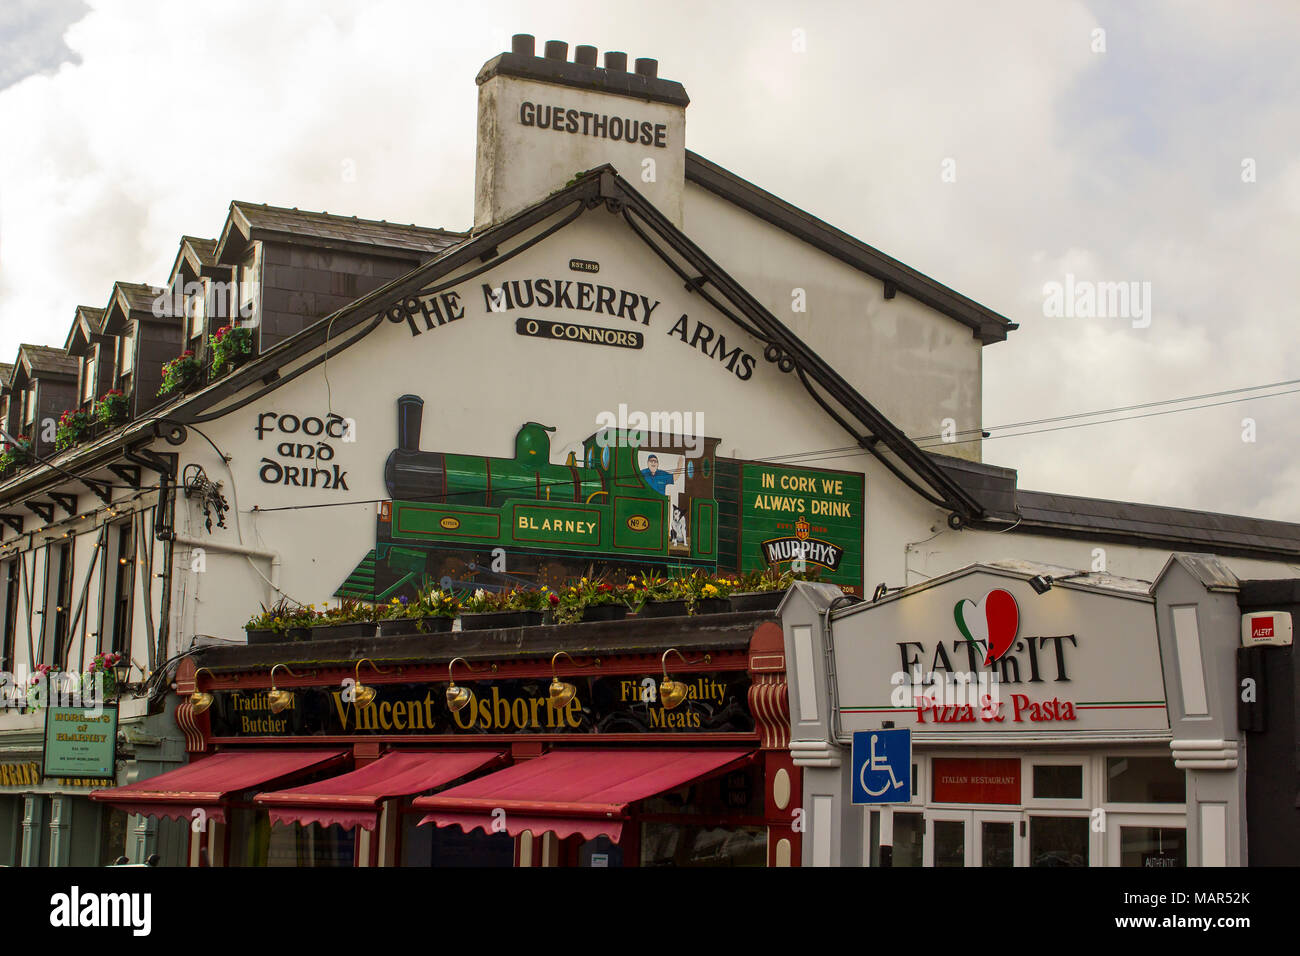 Blarney County Cork Ireland The signage on the gable wall of the Muskerry Arms a traditional Irish Pub on the main street of the town - Stock Image